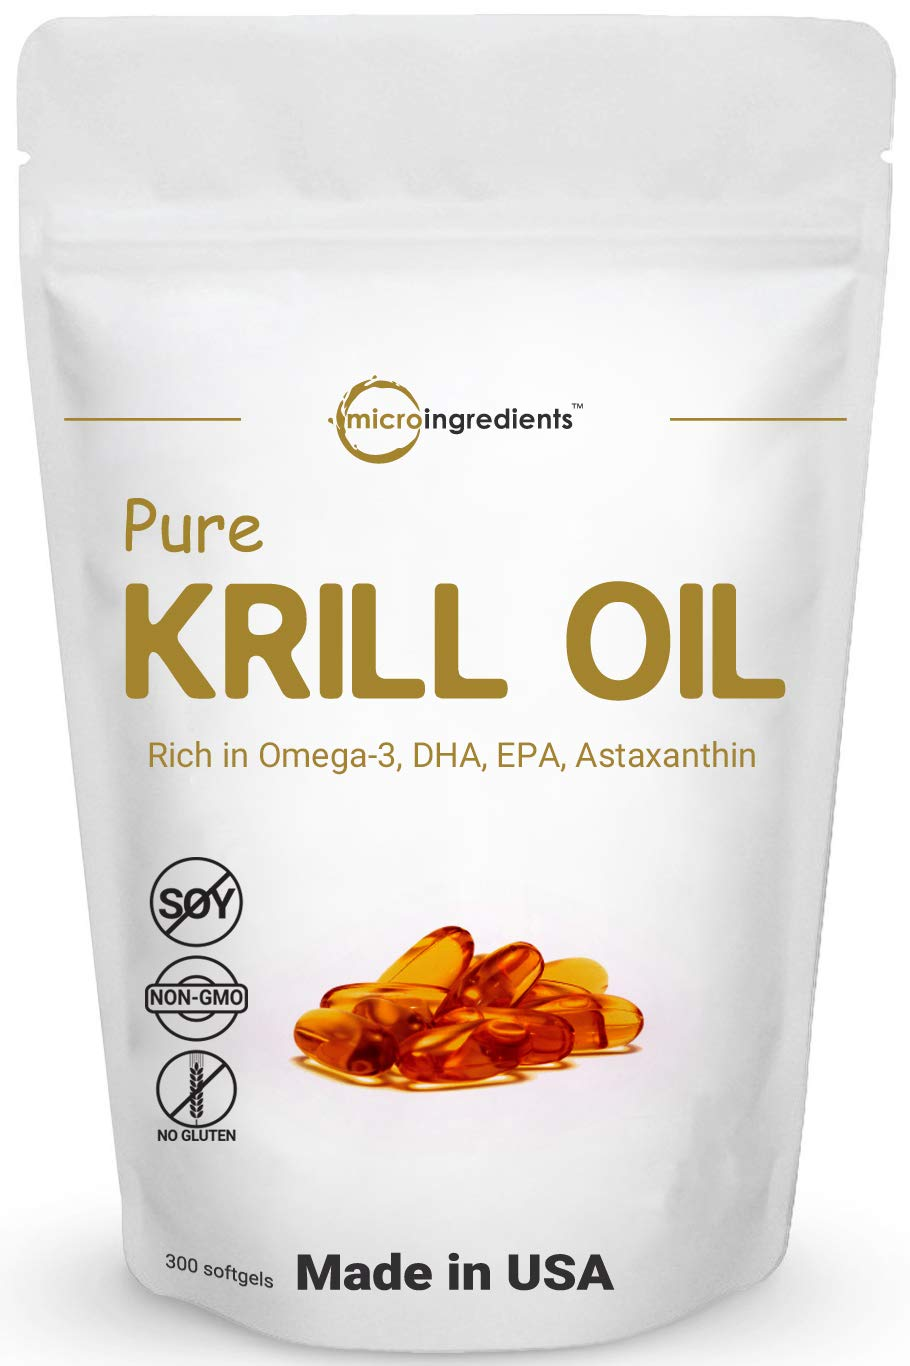 Antarctic Krill Oil Supplement, 1000mg Per Serving, 300 Softgels, Supports Memory and Brain Health, Rich in Omega 3, Fatty Acids, DHA, EPA, Phospholipi and Astaxanthin, No GMOs and Made in USA by Micro Ingredients